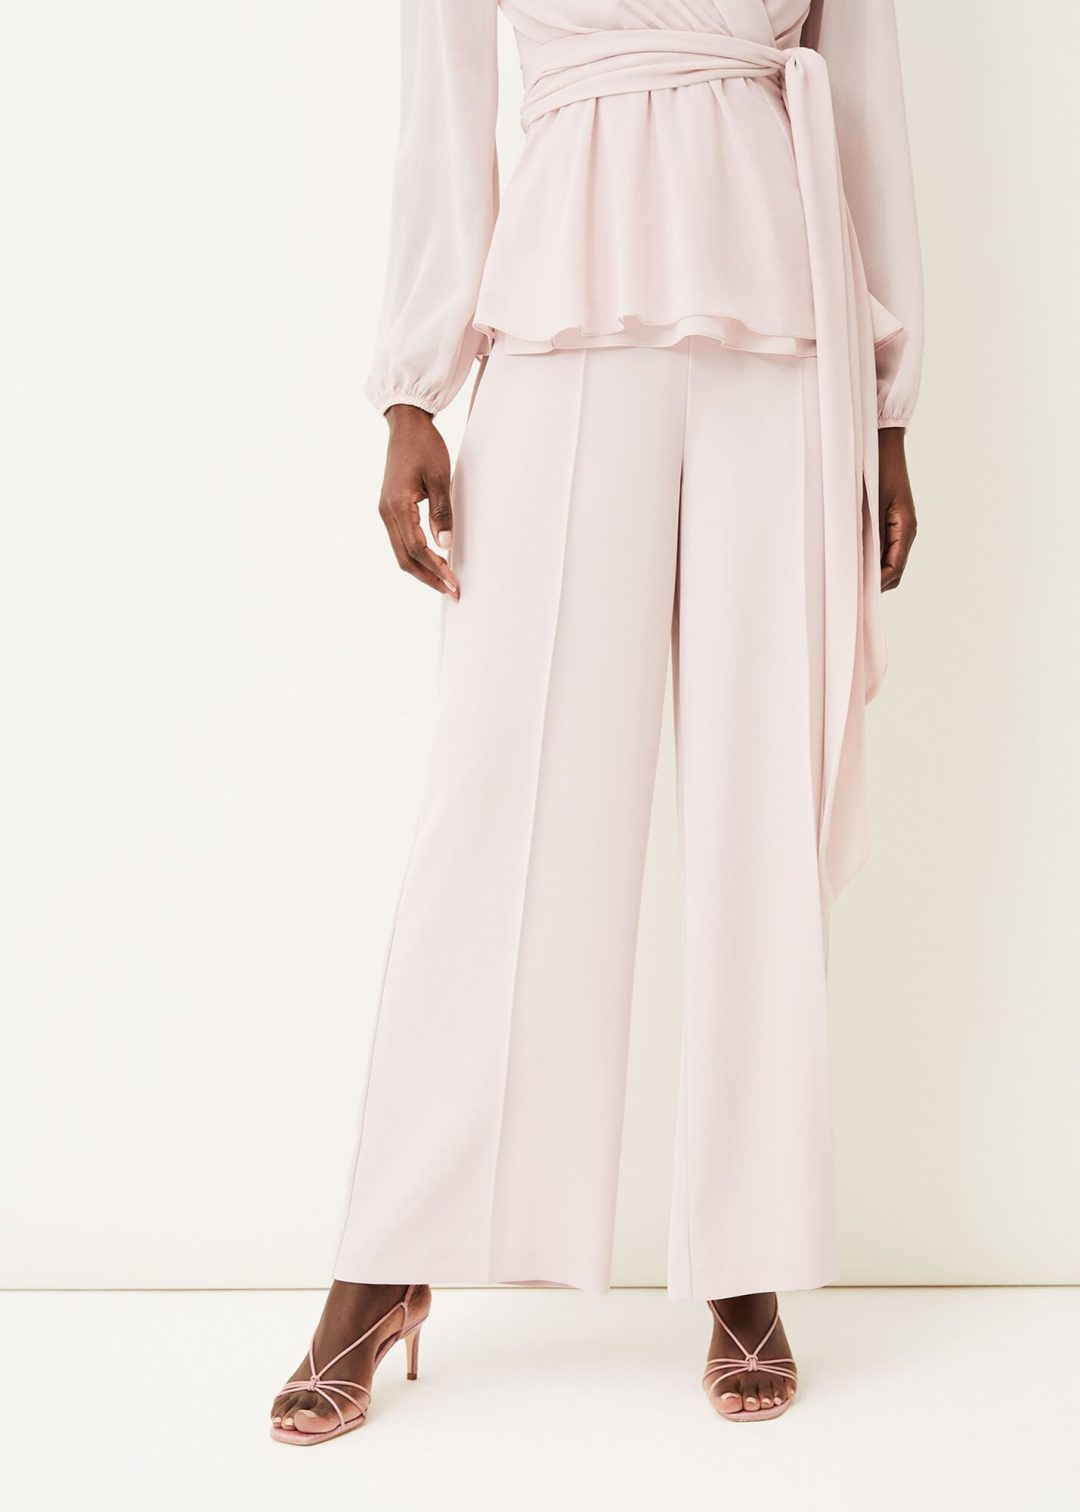 Elegant light pink pant suit trousers with top for mother of groom